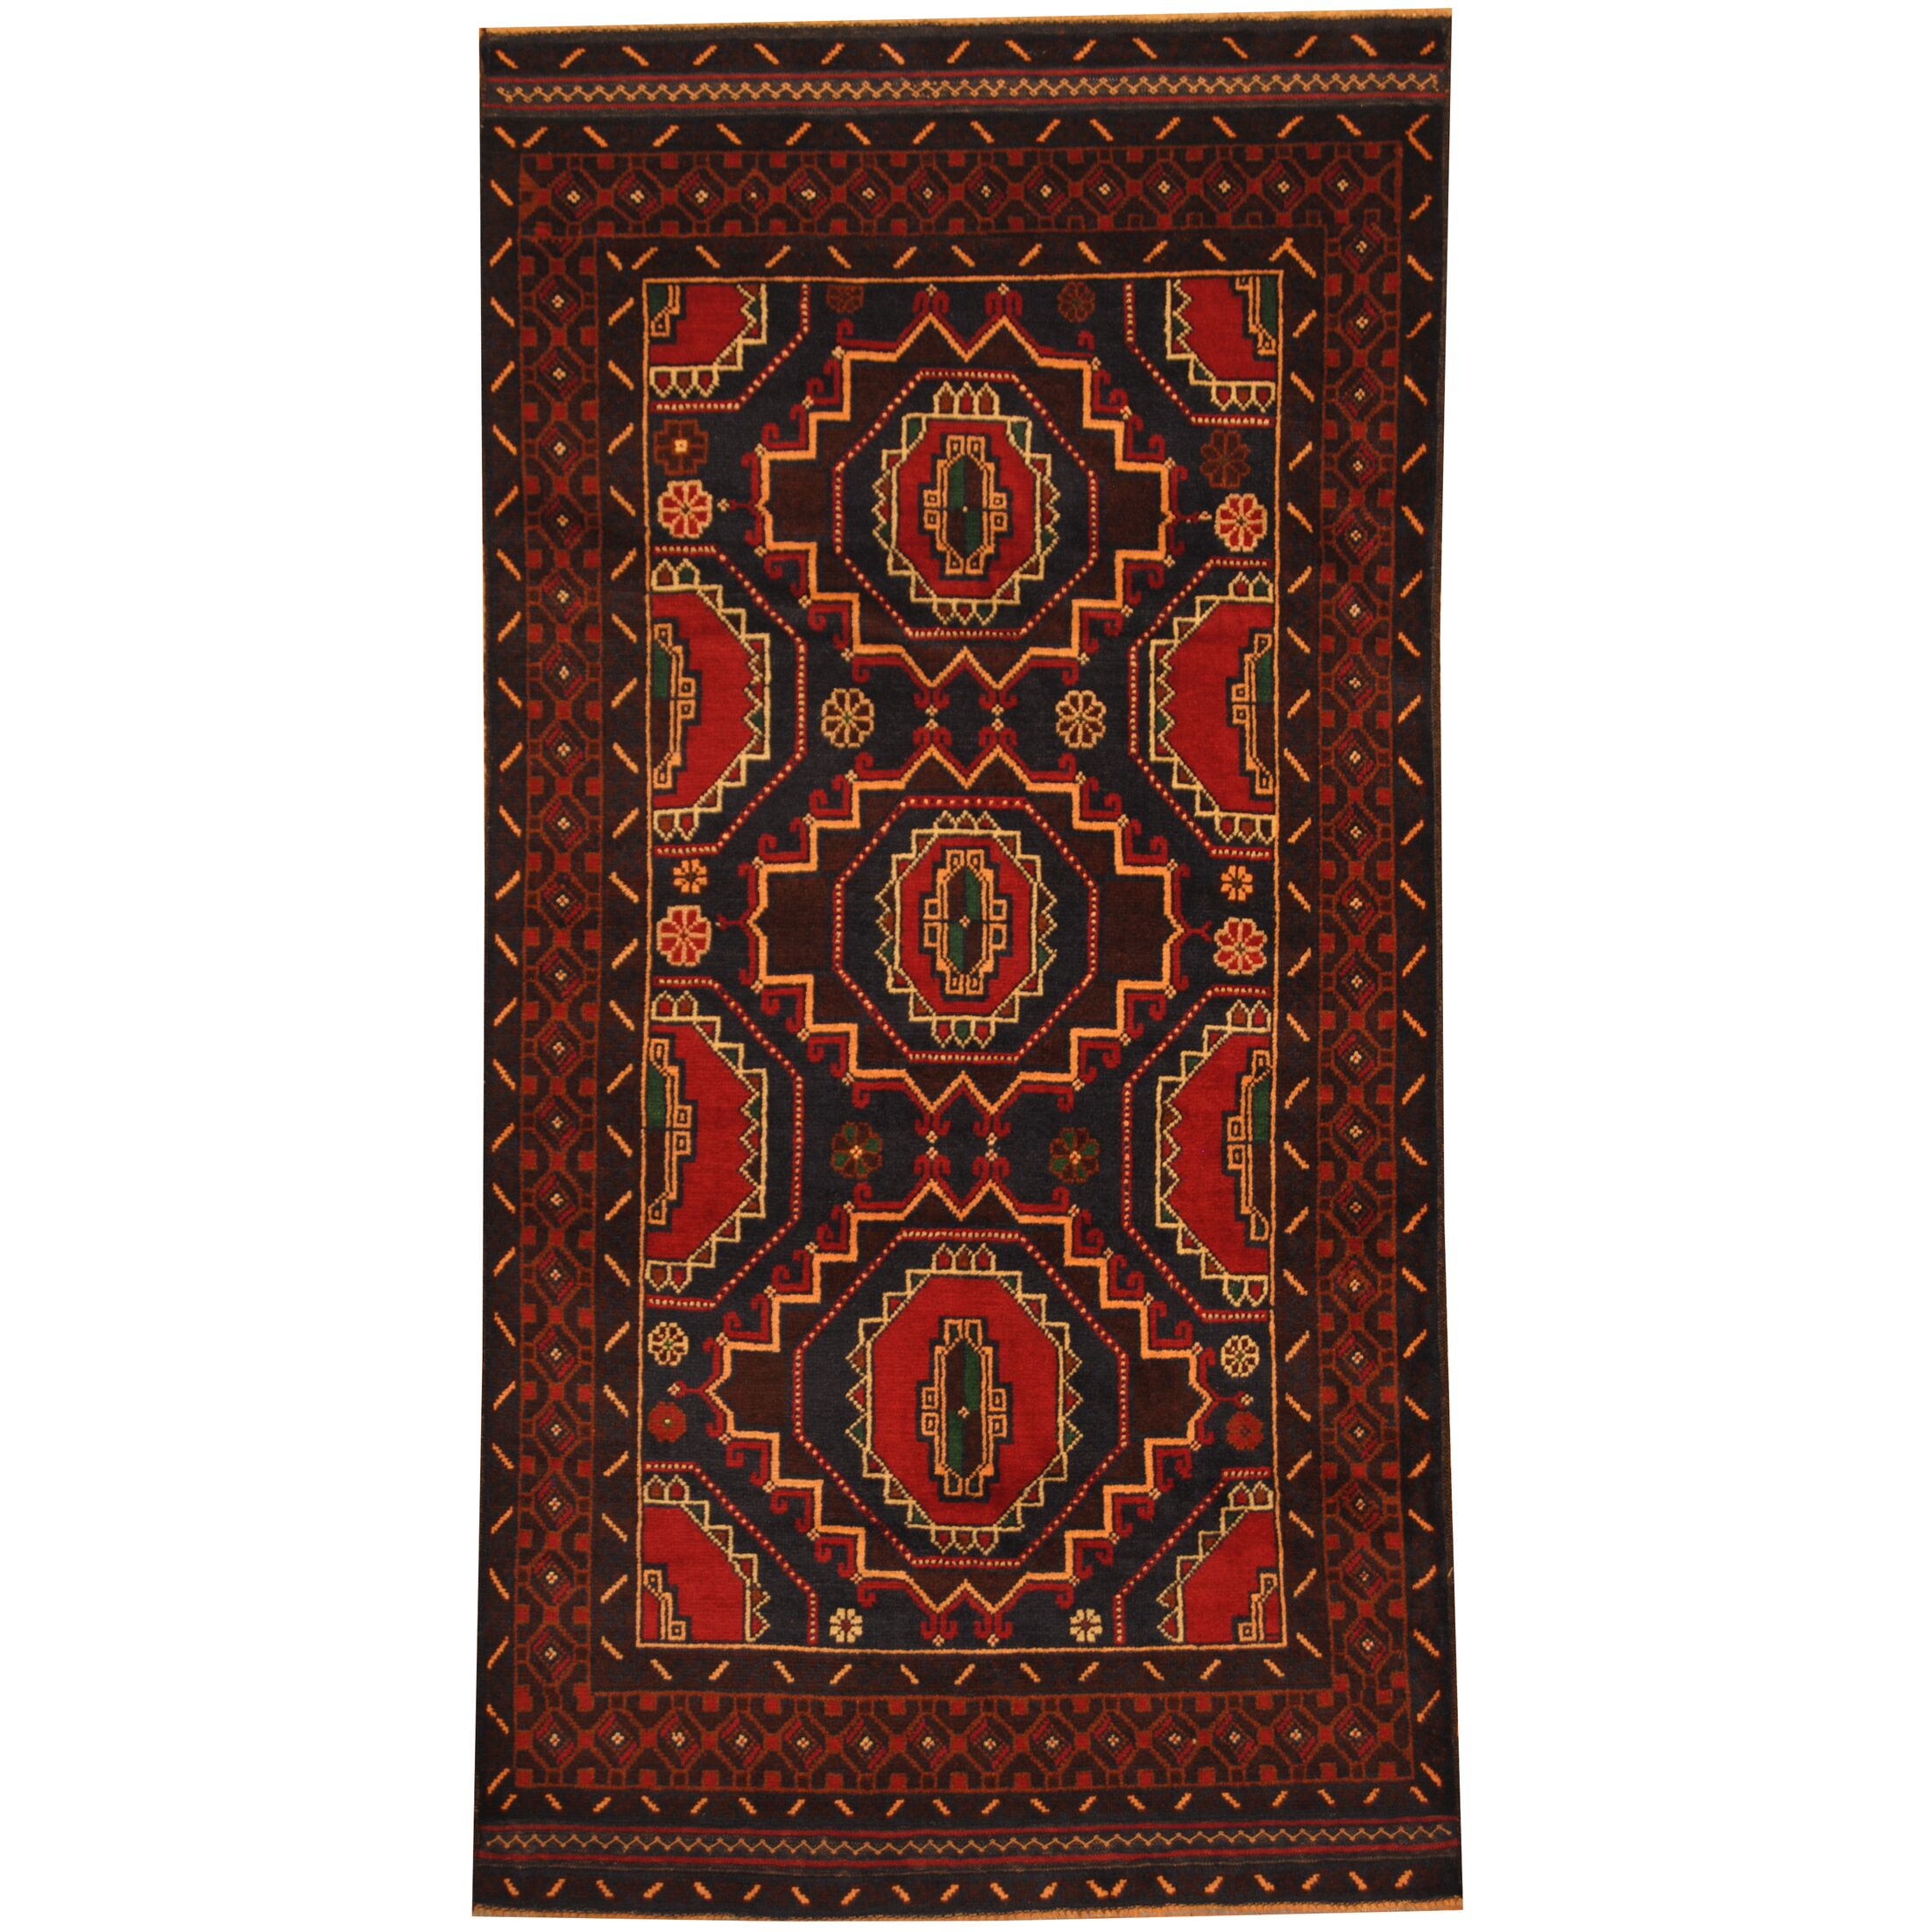 Prentice Tribal Balouchi Hand-Knotted Navy/Brown Area Rug